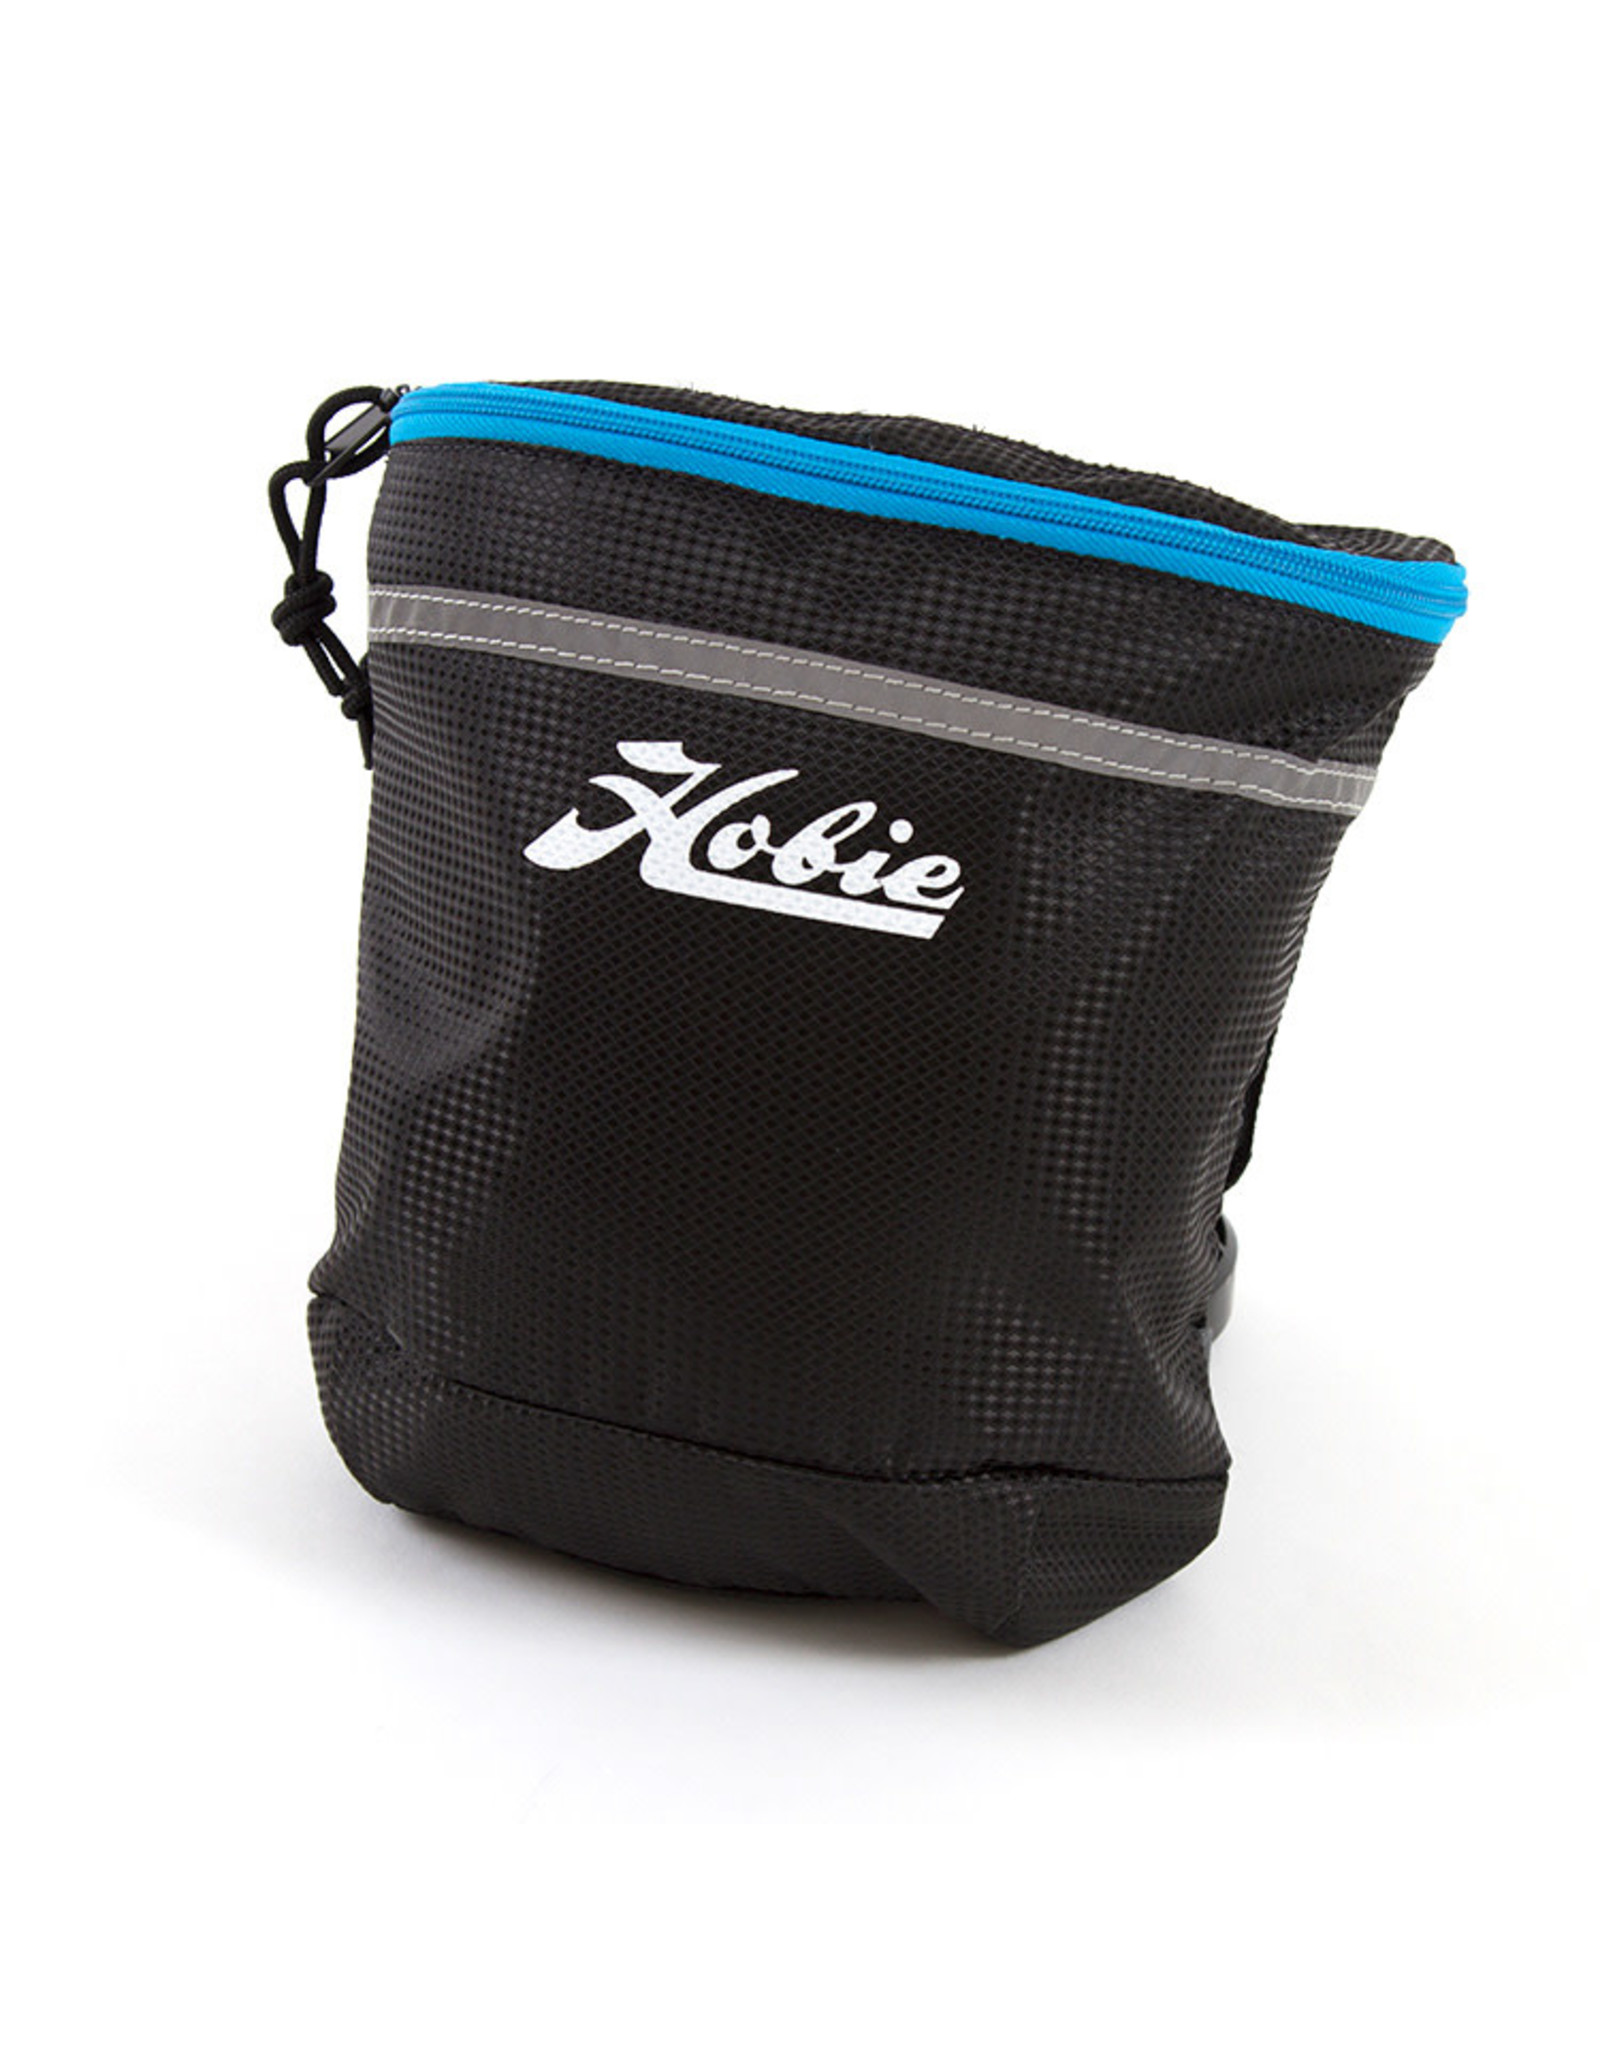 Hobie Hobie Eclipse Accessory Bag